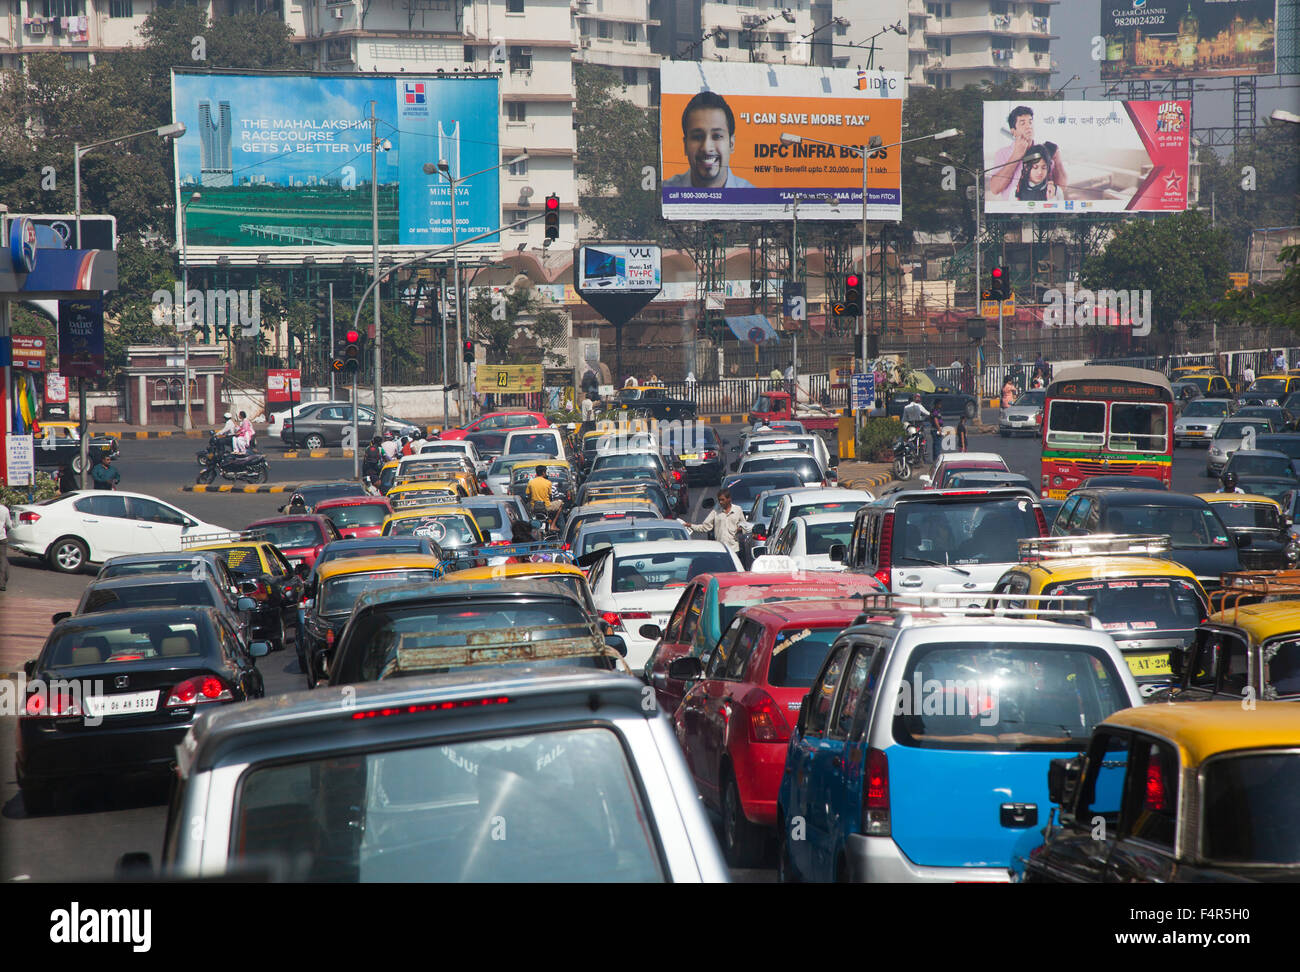 India, Tamil Nadu, Chennai, Madras, city, traffic congestion, traffic, chaos, chaotic, congestion, gridlock, mass, - Stock Image